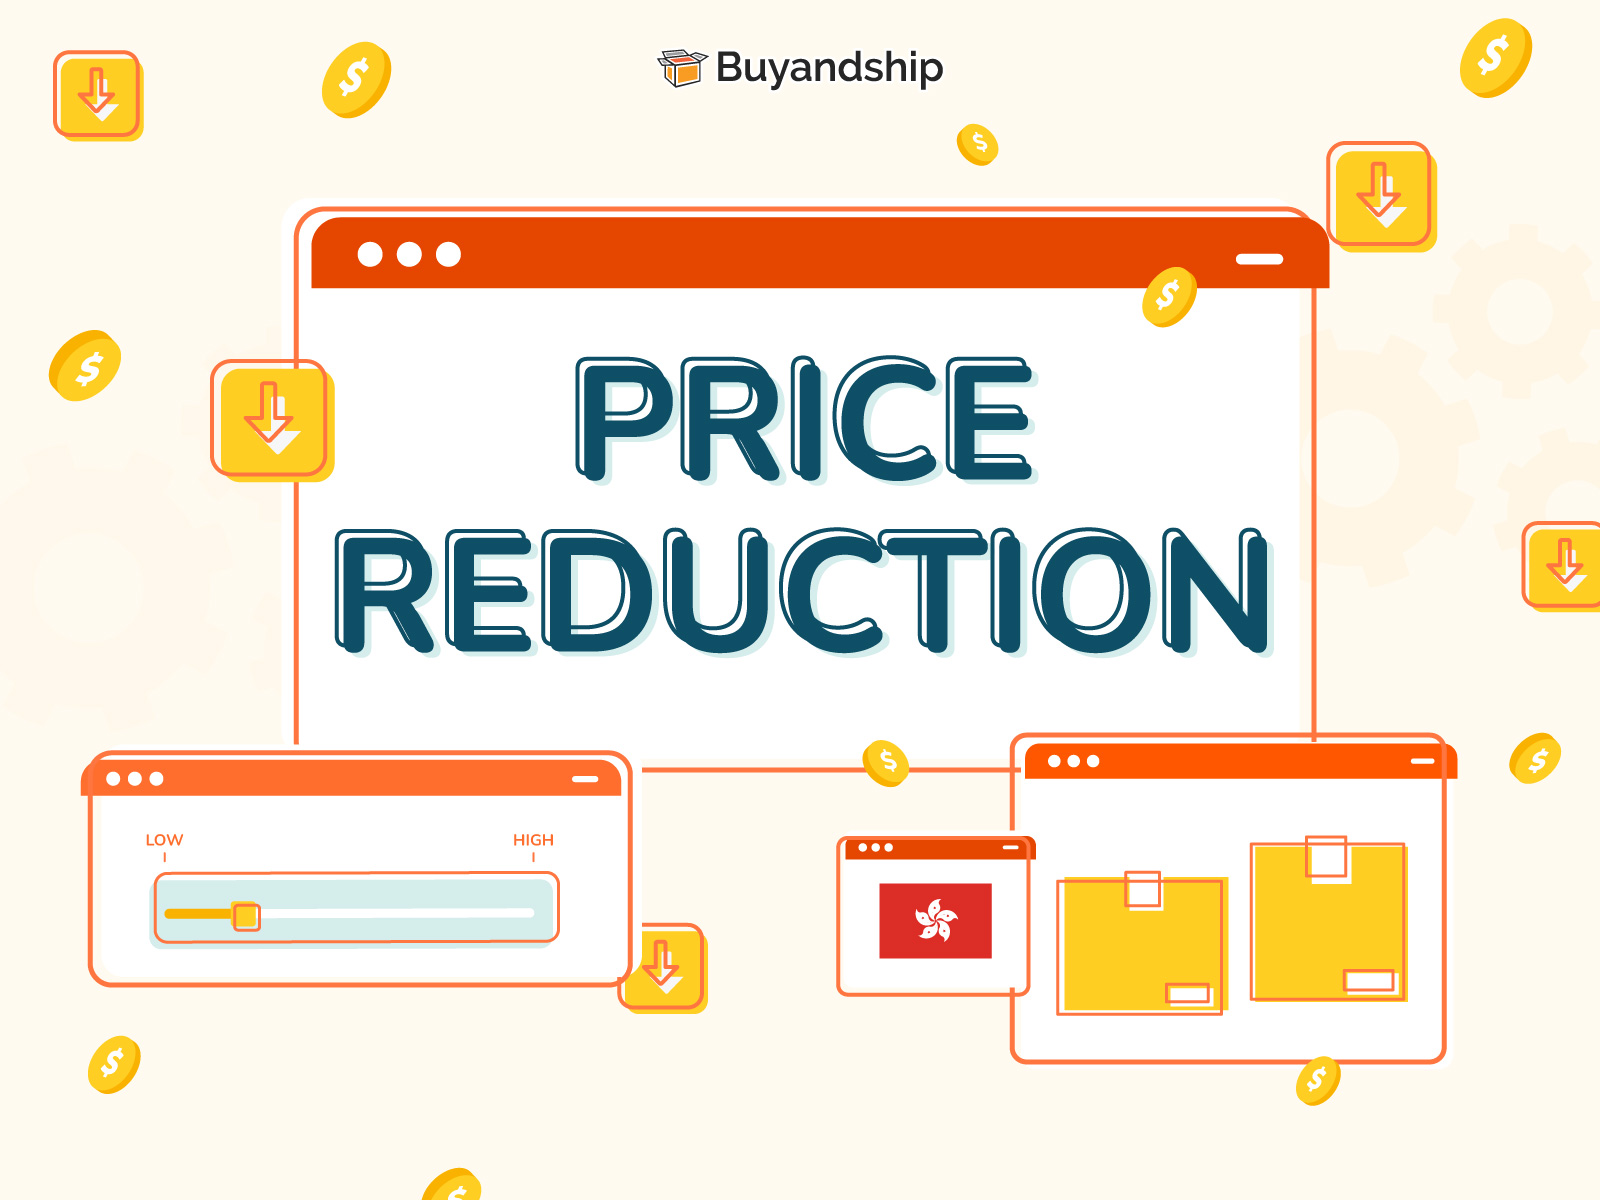 Price Reduction on shipments from Hong Kong